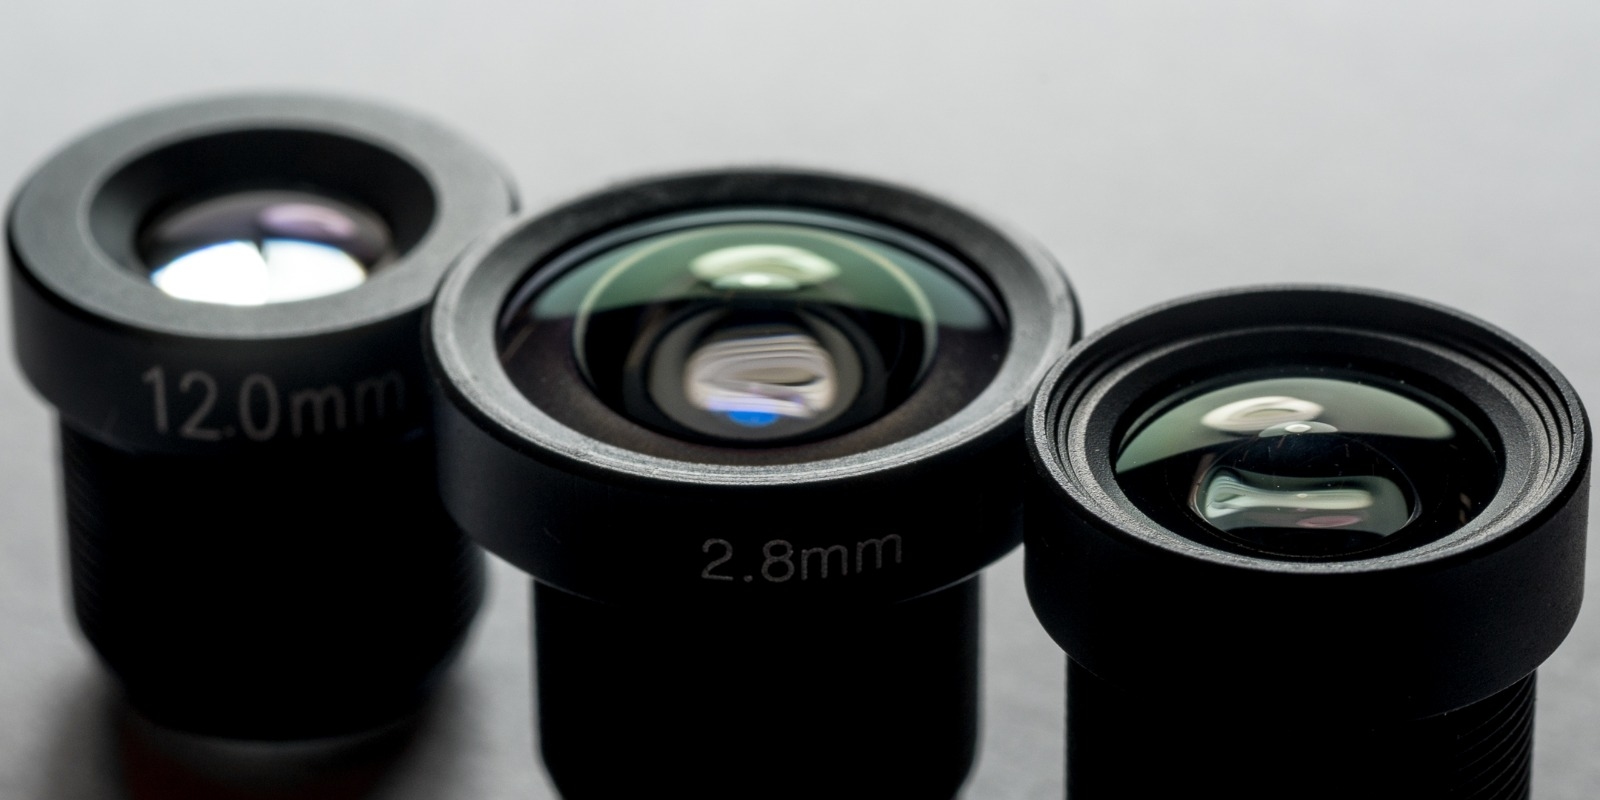 Our new range of M12 large F ratio lenses